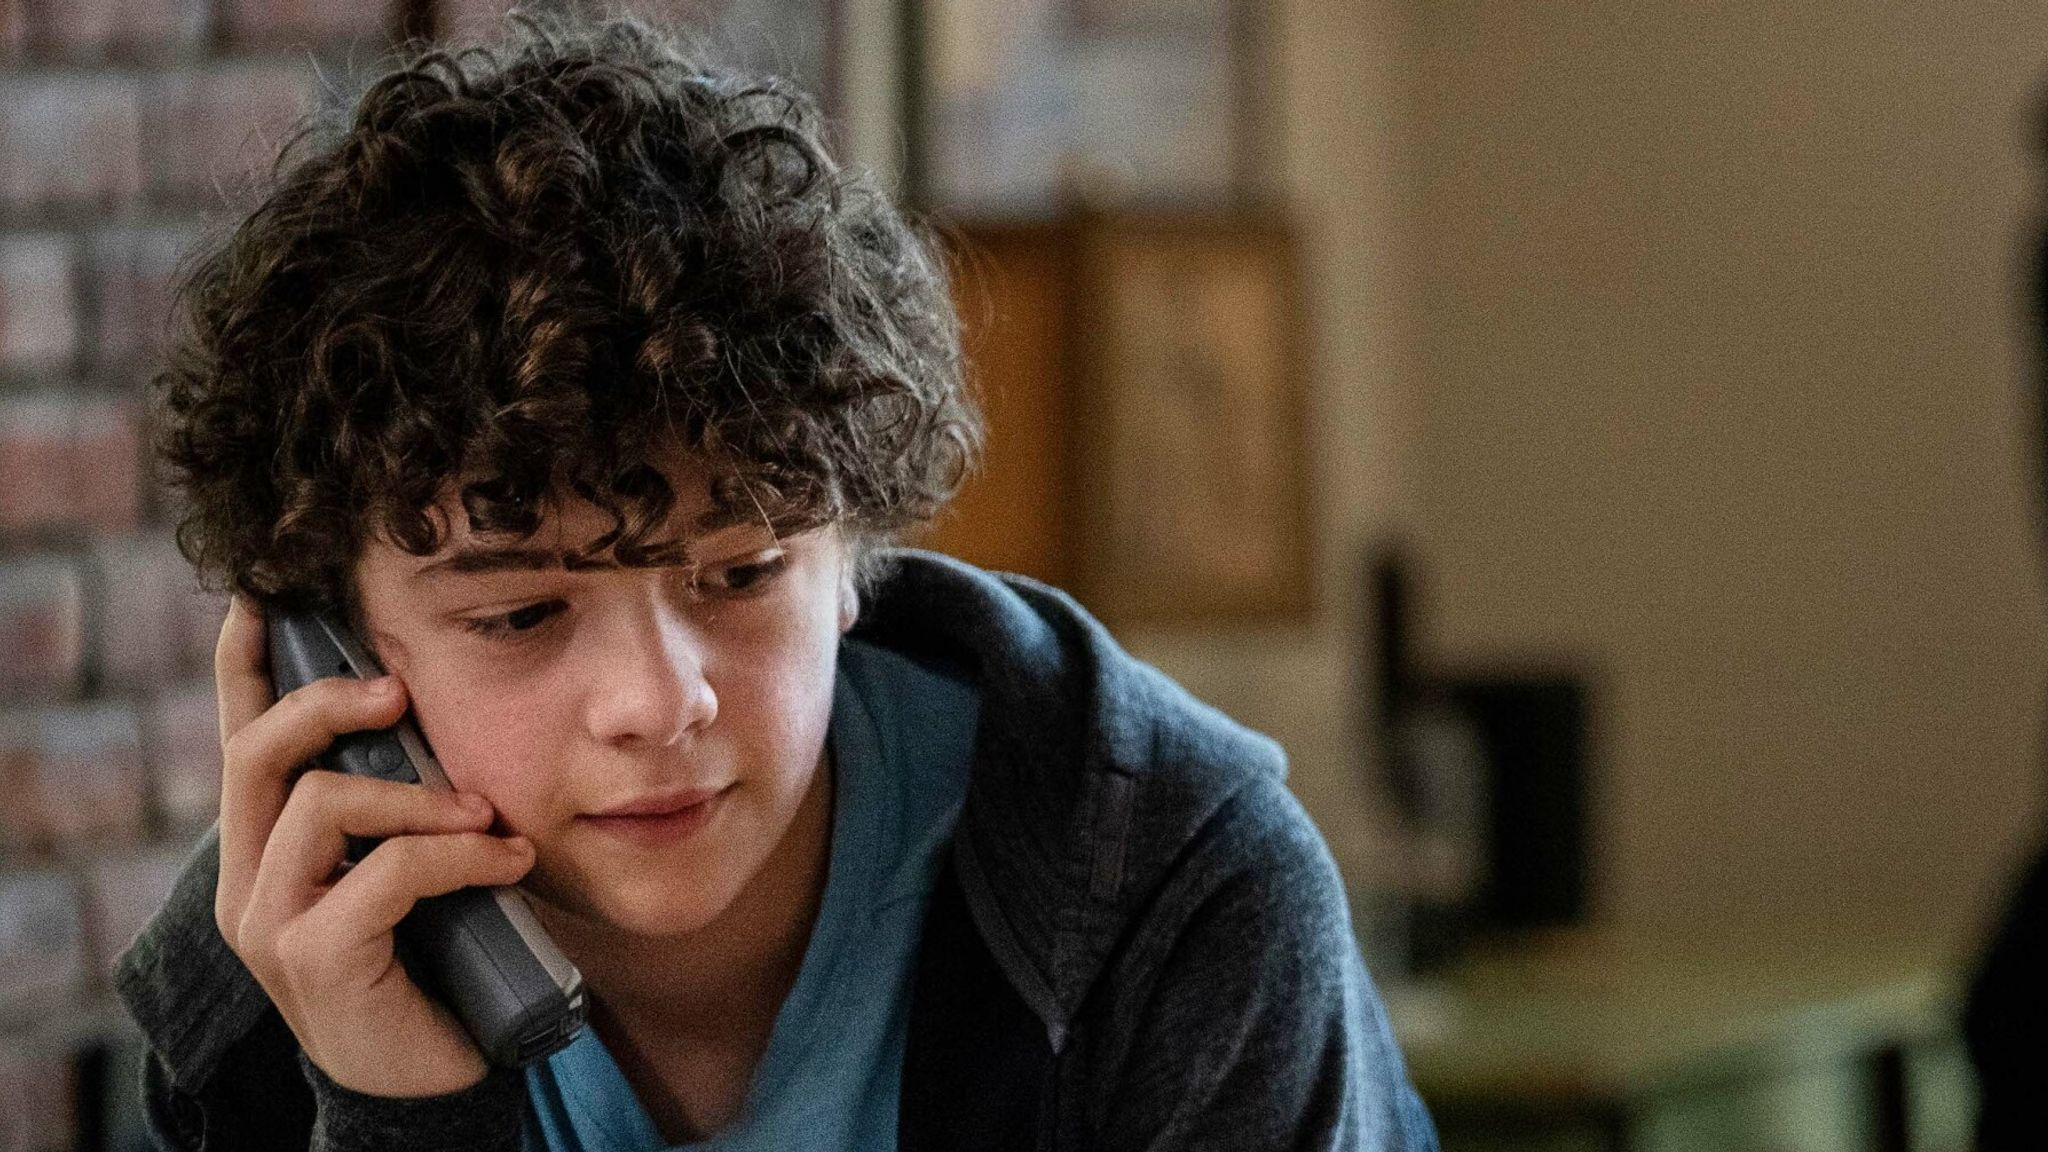 Noah Jupe plays Henry, but does he know more than he's letting on?